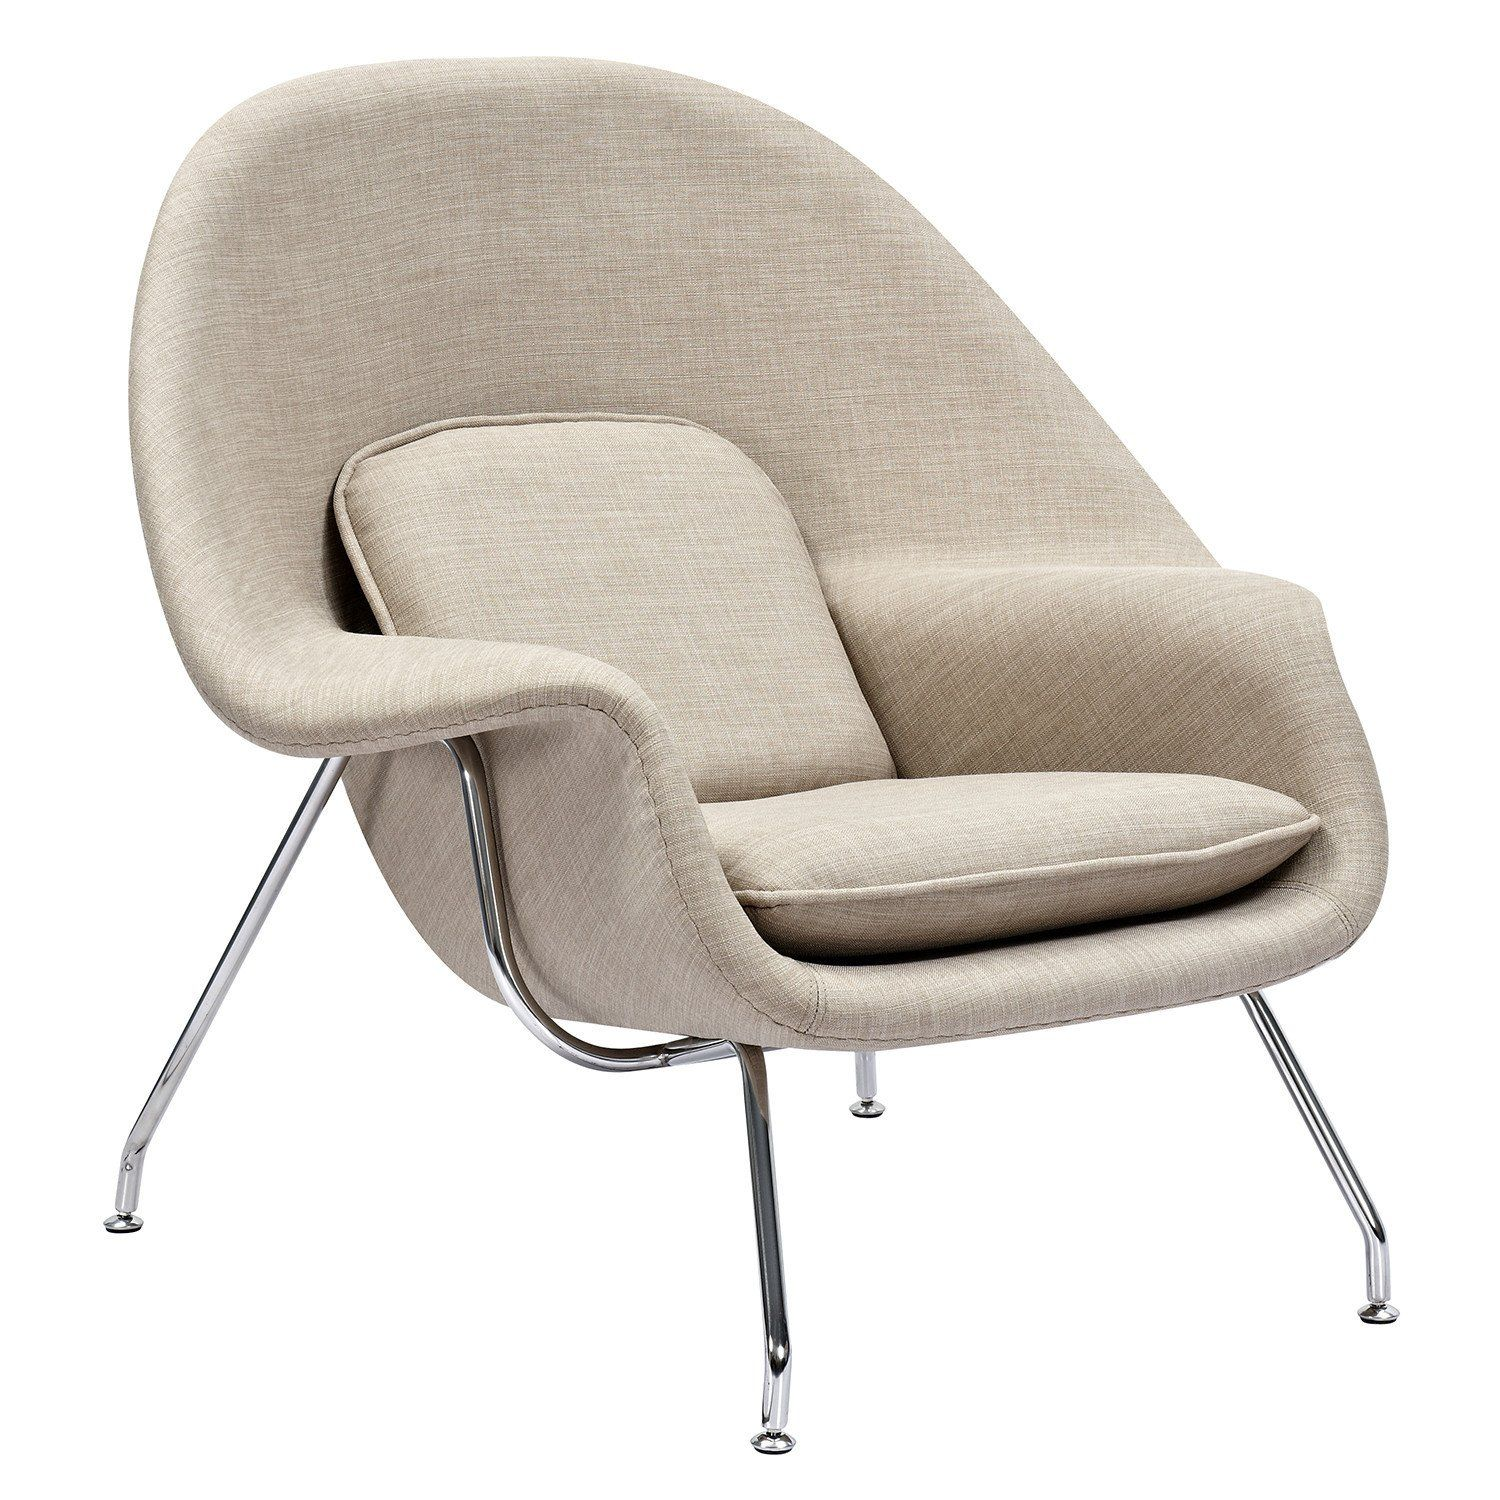 Info Features Colors Dimensions The Womb Style Chair Has The